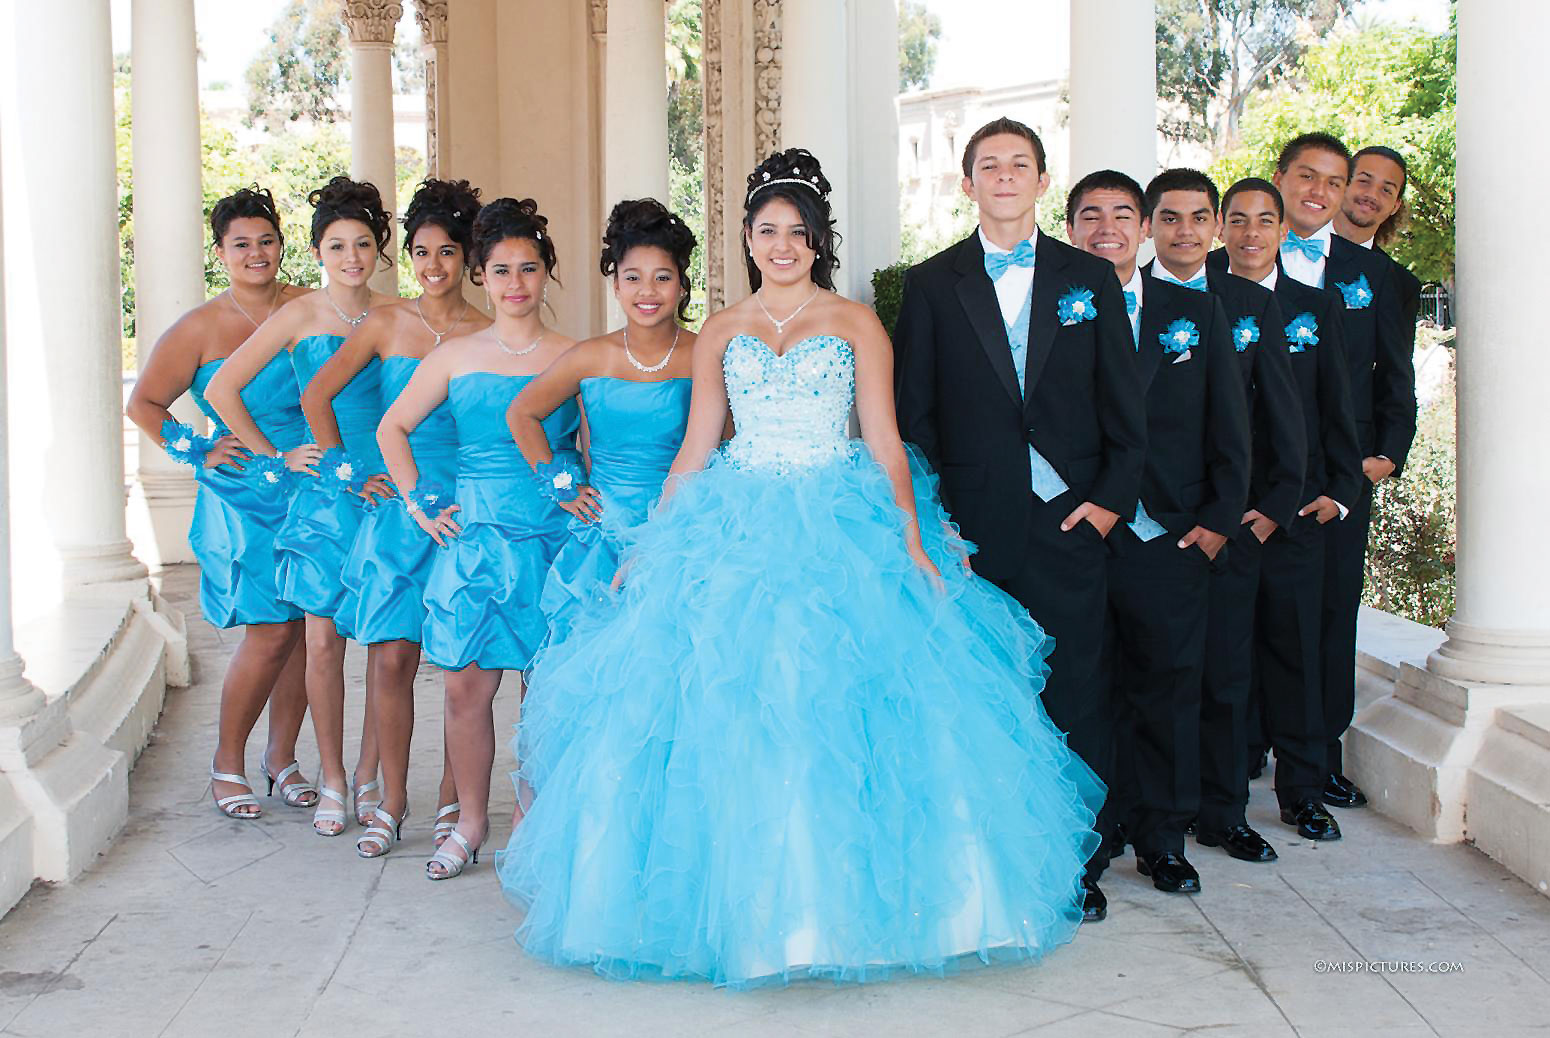 Ways to Getting the Best Quince Pictures Possible